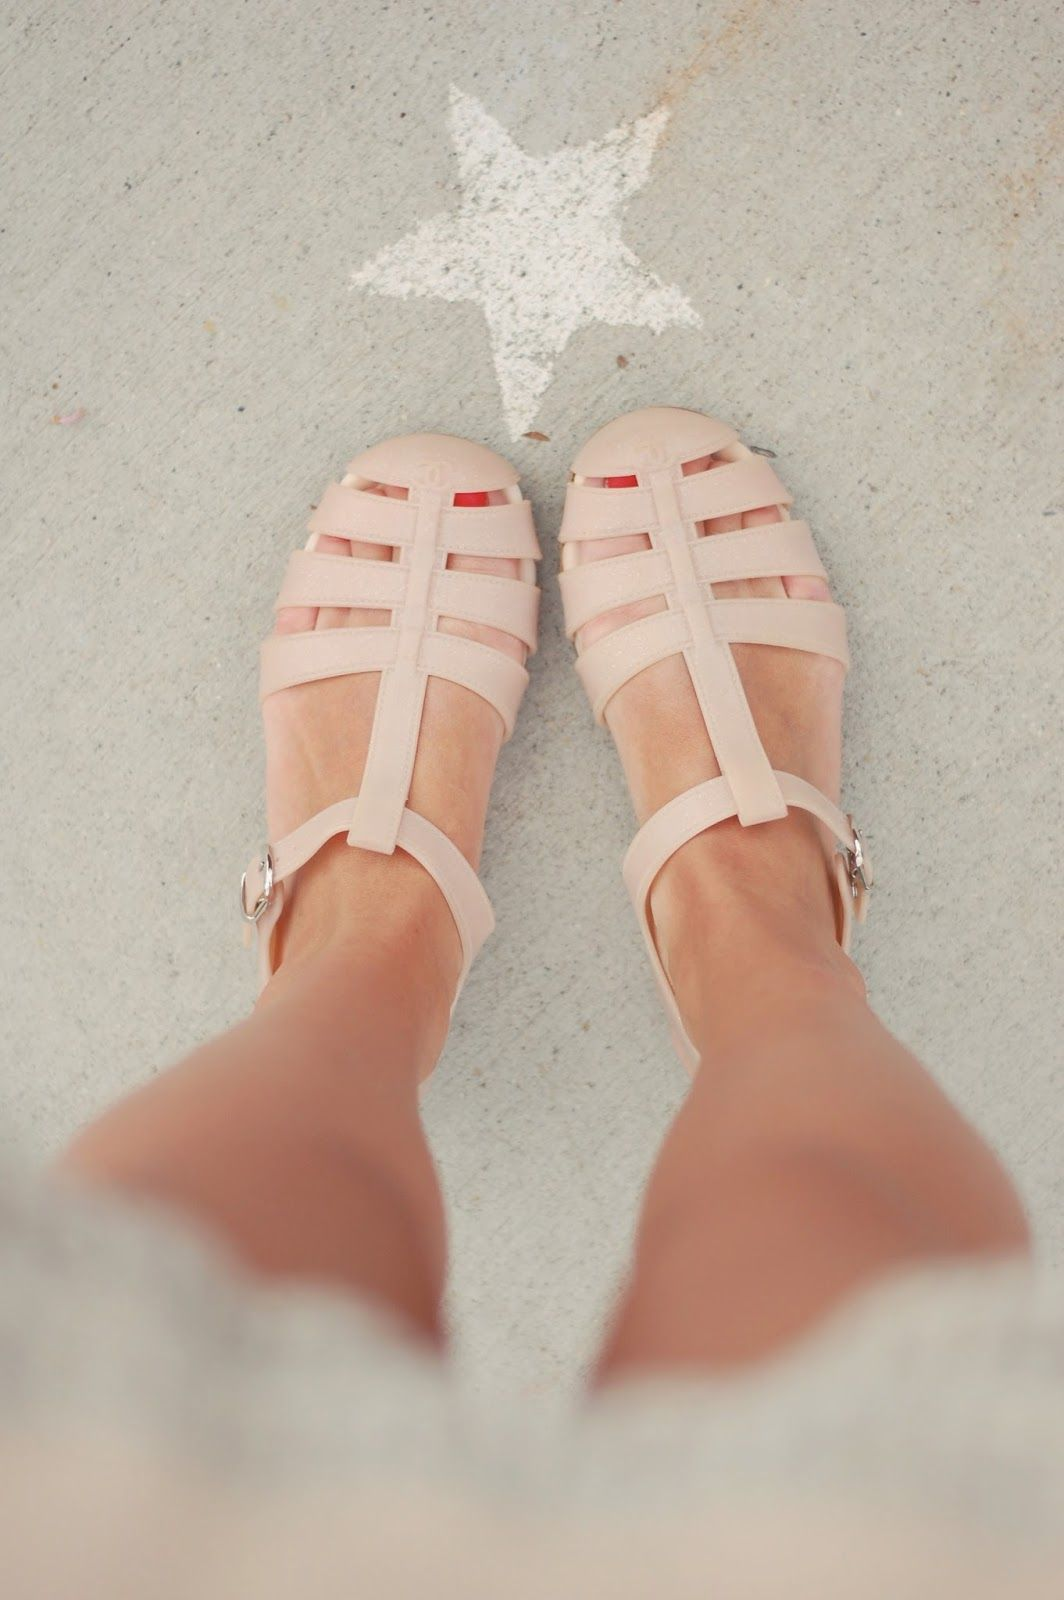 Emilee Anne wearing Chanel pink jellies